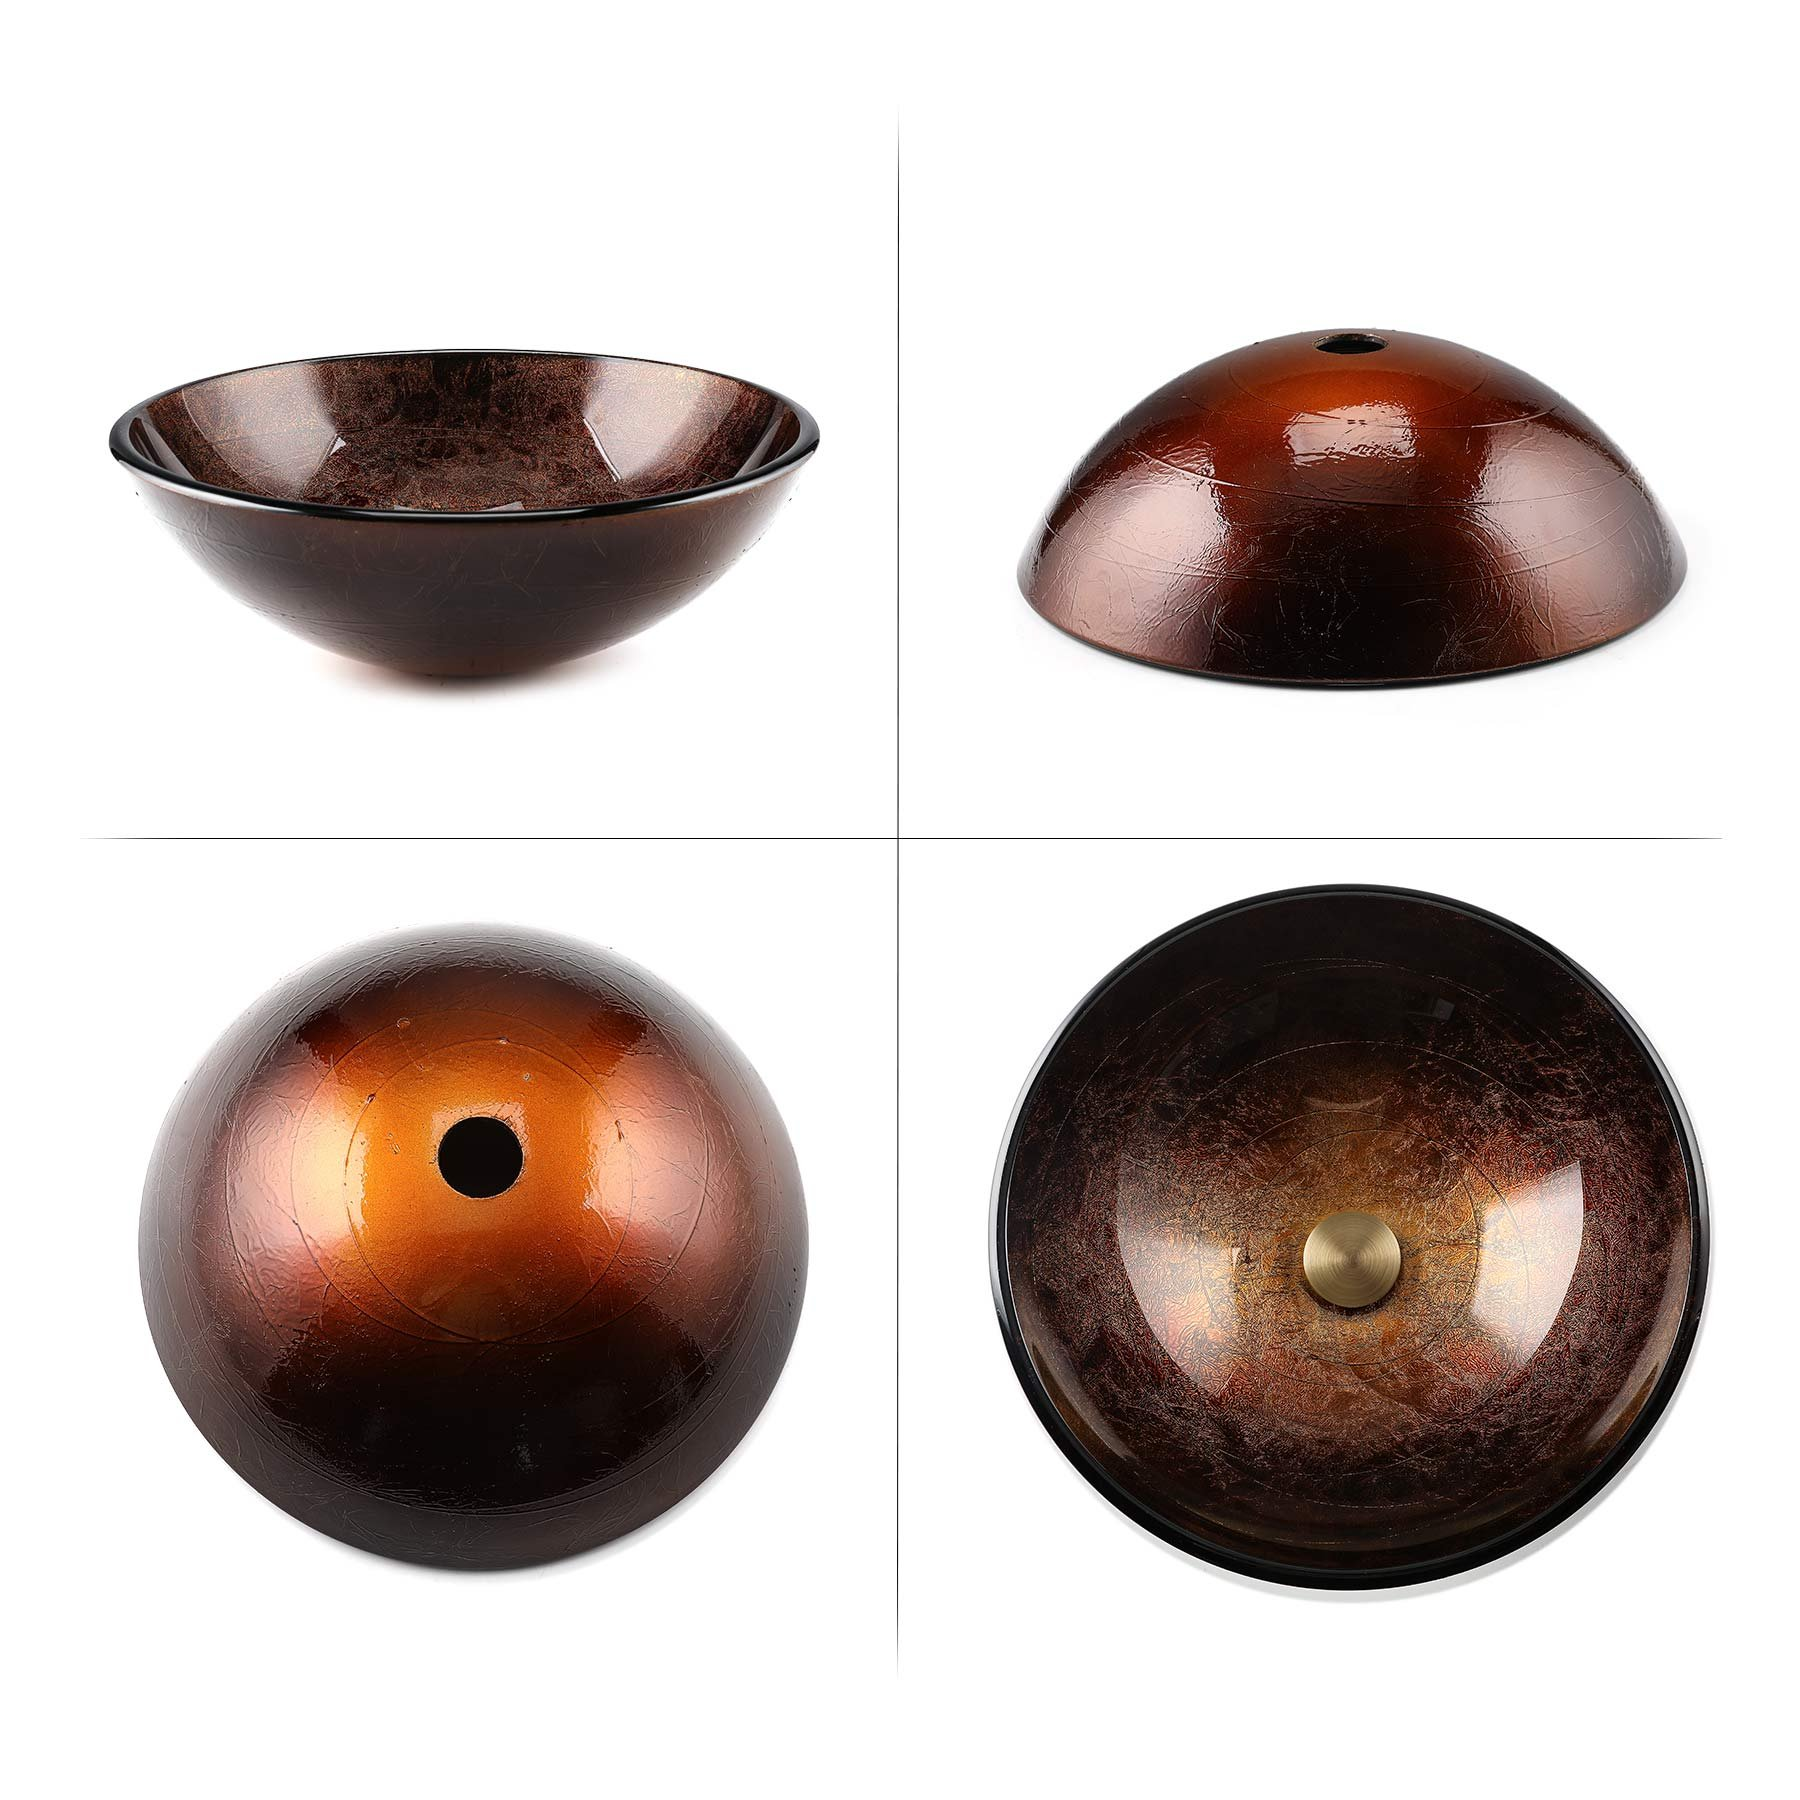 16.5'' x 16.5'' Bathroom Glass Vessel Sink, Round Artistic Handcrafted Gold Foil Color Tempered Glass Vanity Sink Bowl with Chrome Pop Up Drain Stopper (Copper) by CO-Z (Image #6)